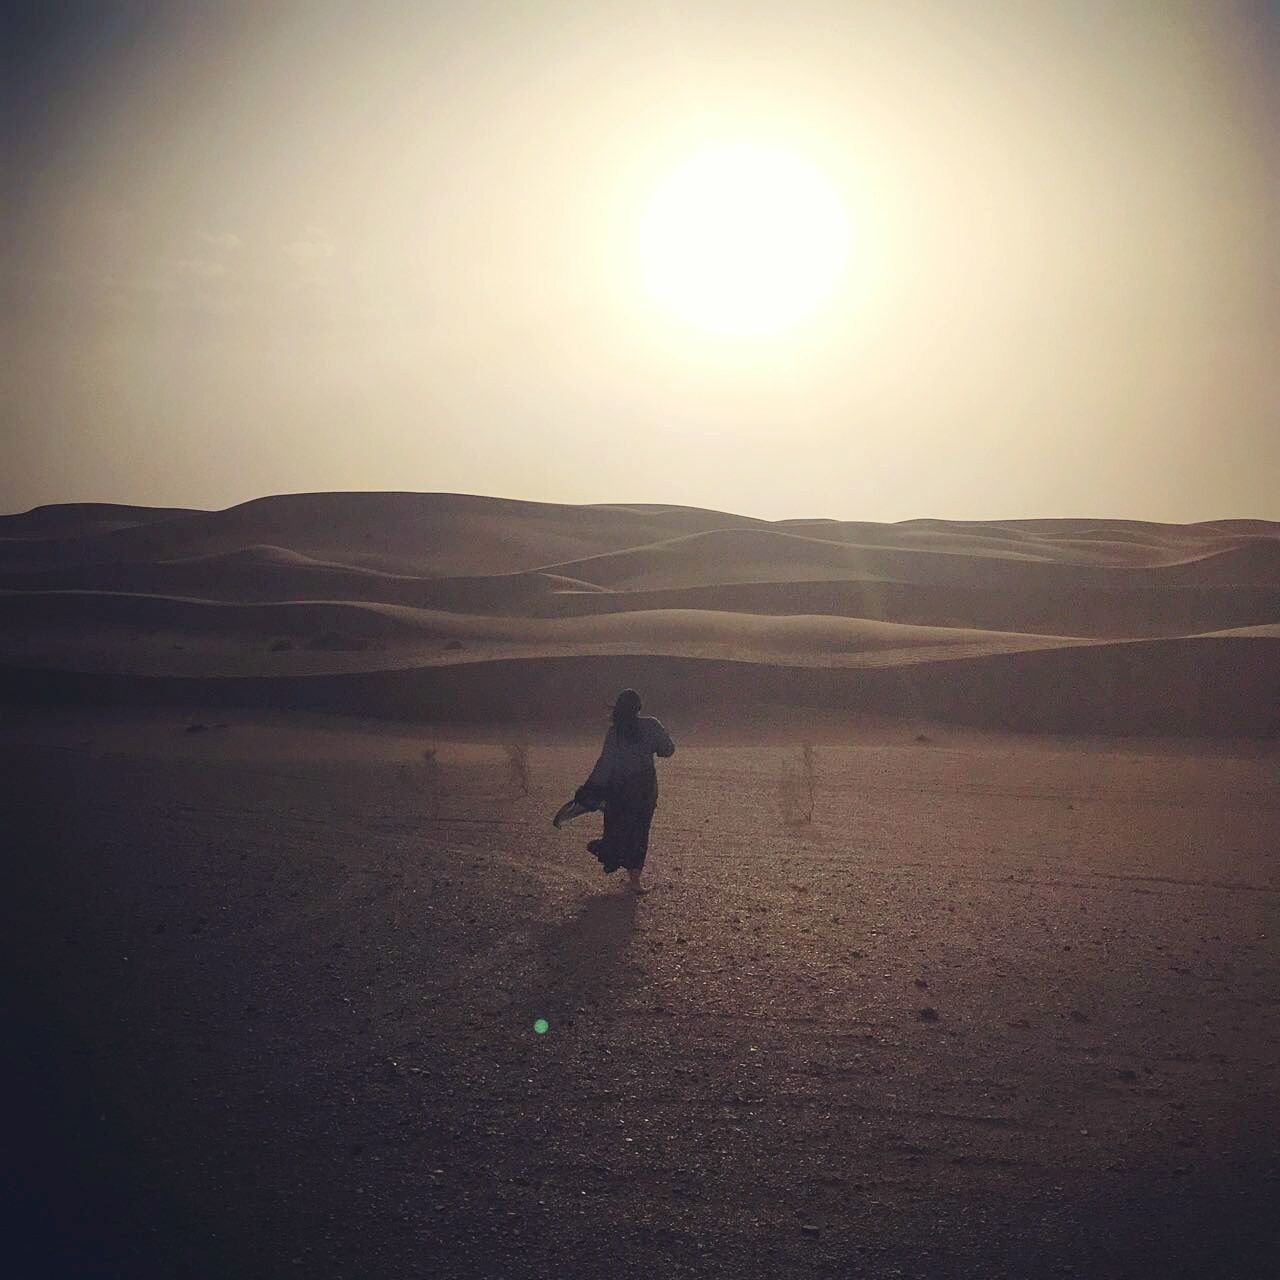 nature, landscape, sun, tranquil scene, sand, sunset, scenics, outdoors, beauty in nature, desert, real people, one person, sky, full length, sunlight, one animal, silhouette, tranquility, sand dune, domestic animals, mountain, animal themes, arid climate, mammal, clear sky, day, water, pets, people